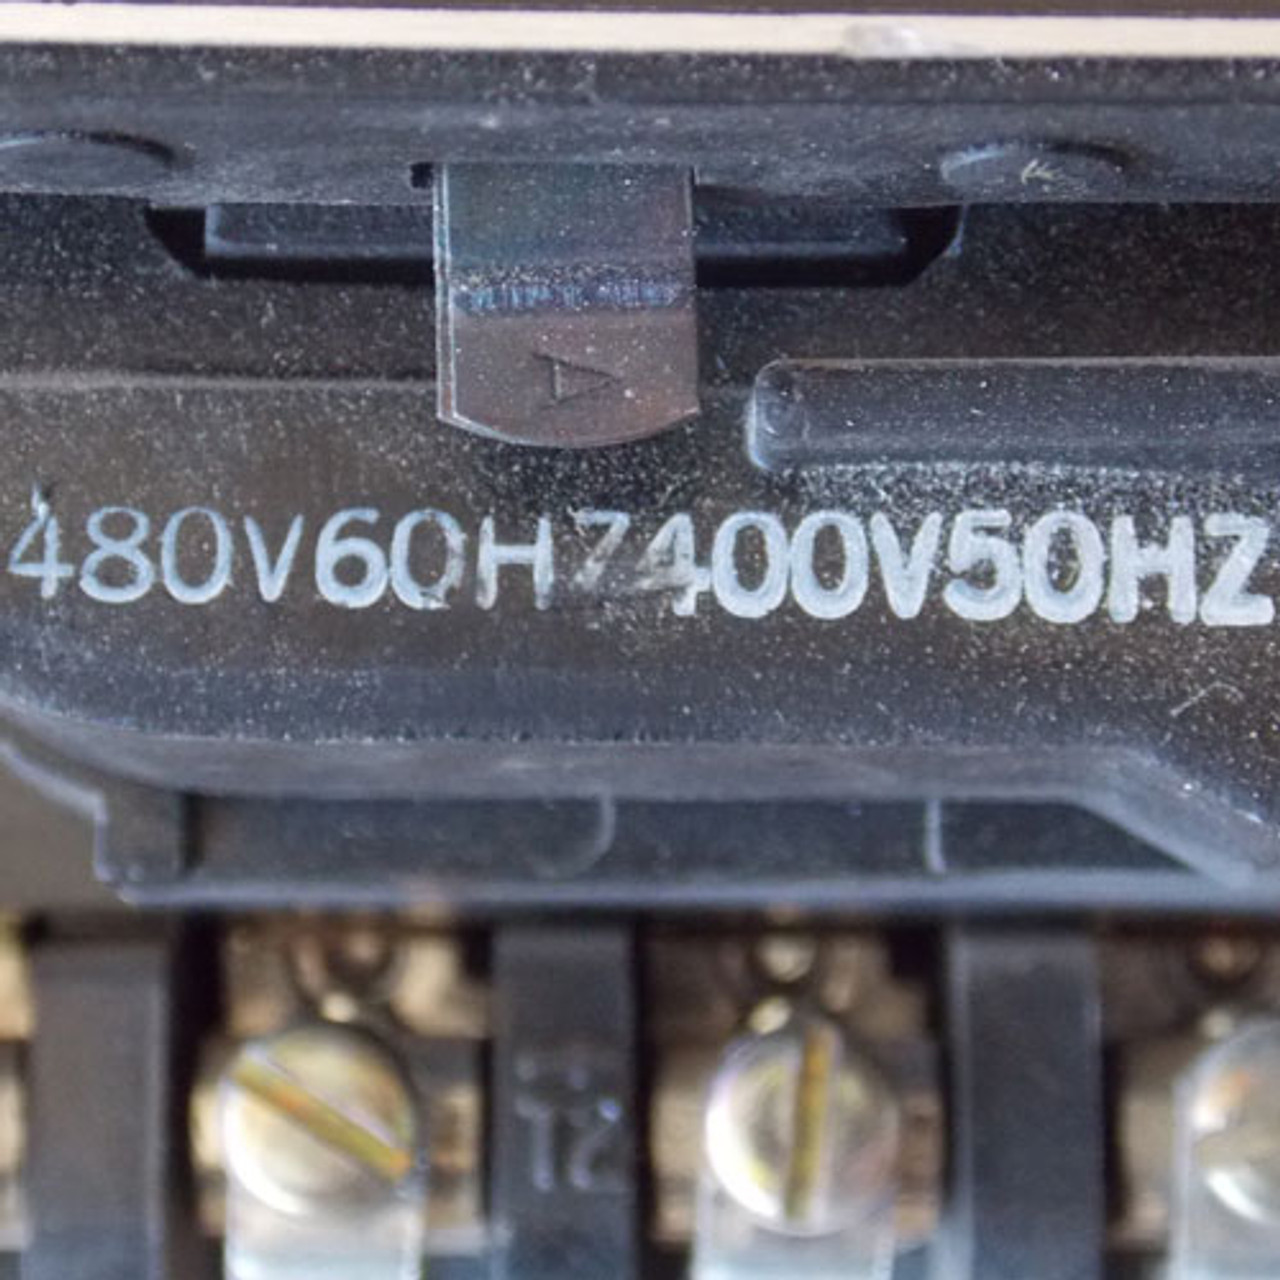 GE CR205C0 Size 1 Magnetic Contactor 3 Phase 600V 480V Coil - Used